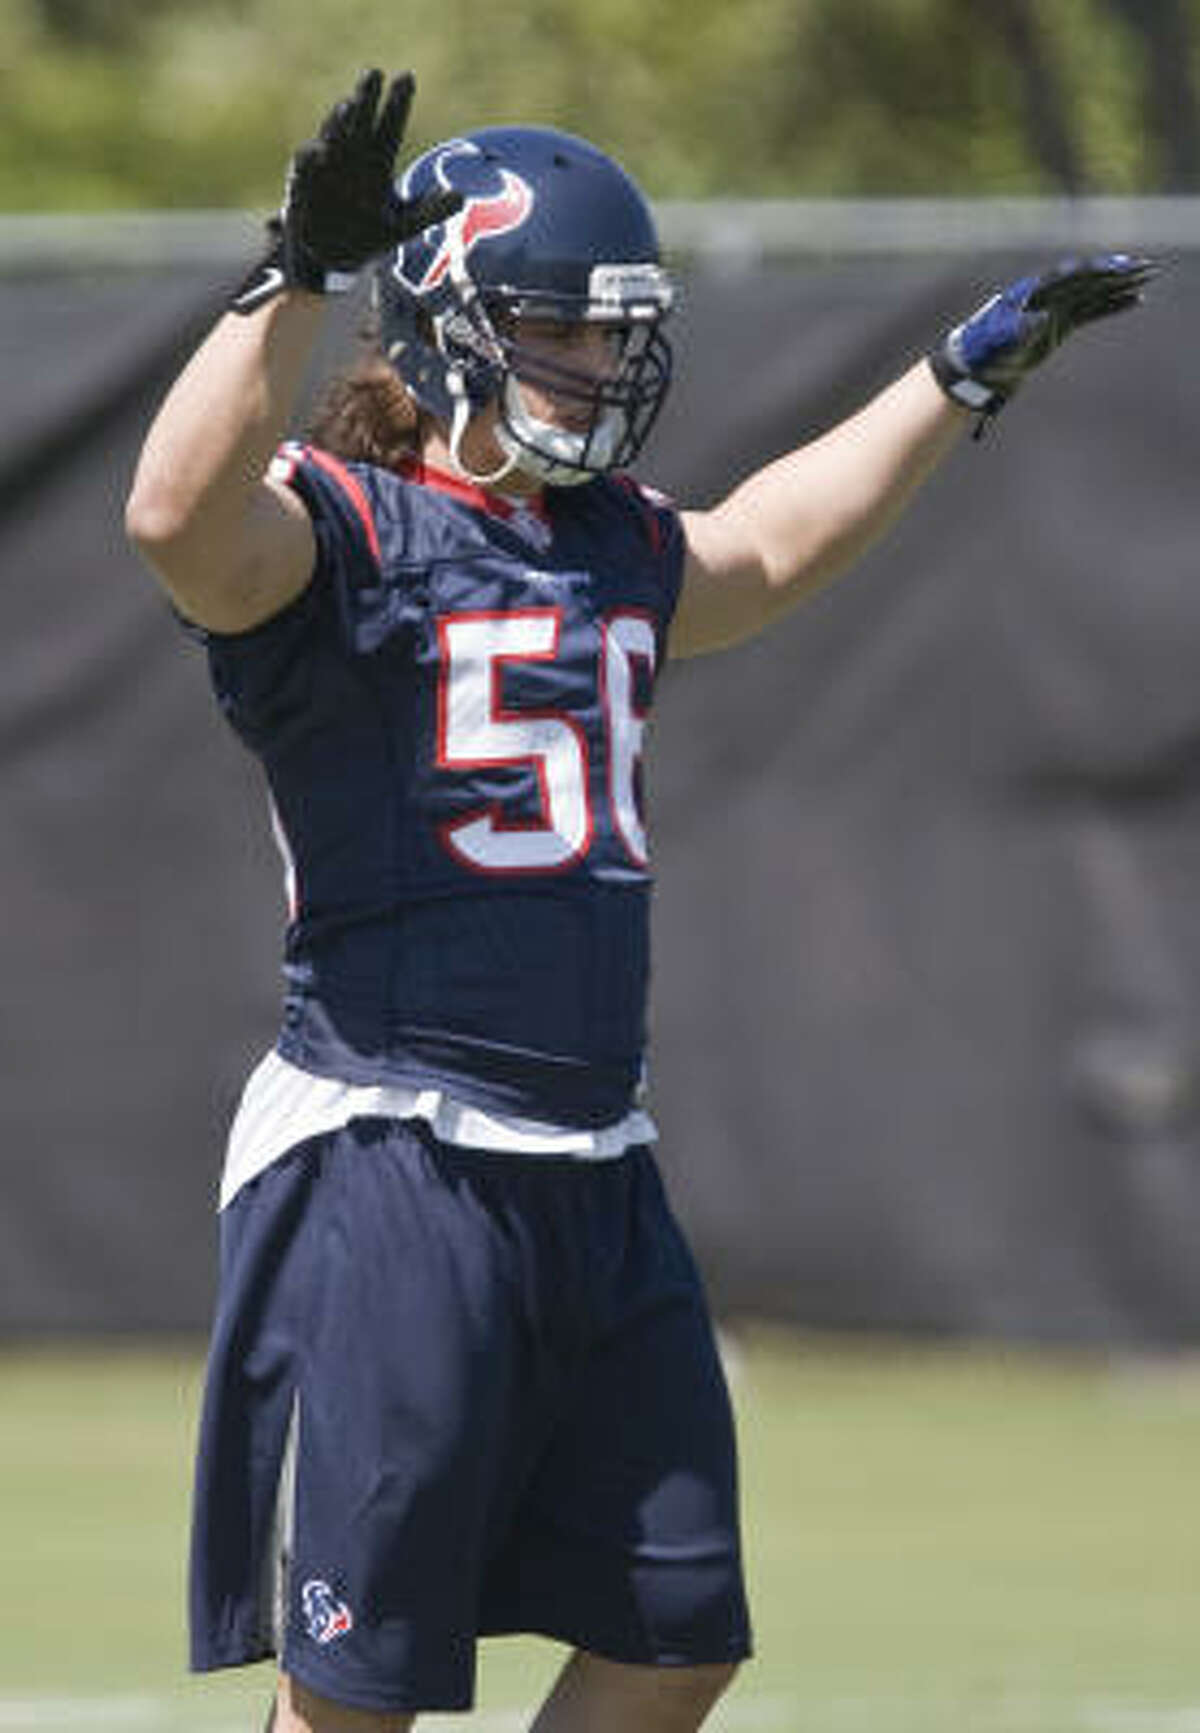 Rookie under pressure: Brian Cushing, outside linebacker The first-round pick, 15th overall, was inserted as a starter on the strong side as soon as he reported. He's active, aggressive and has a mean streak.